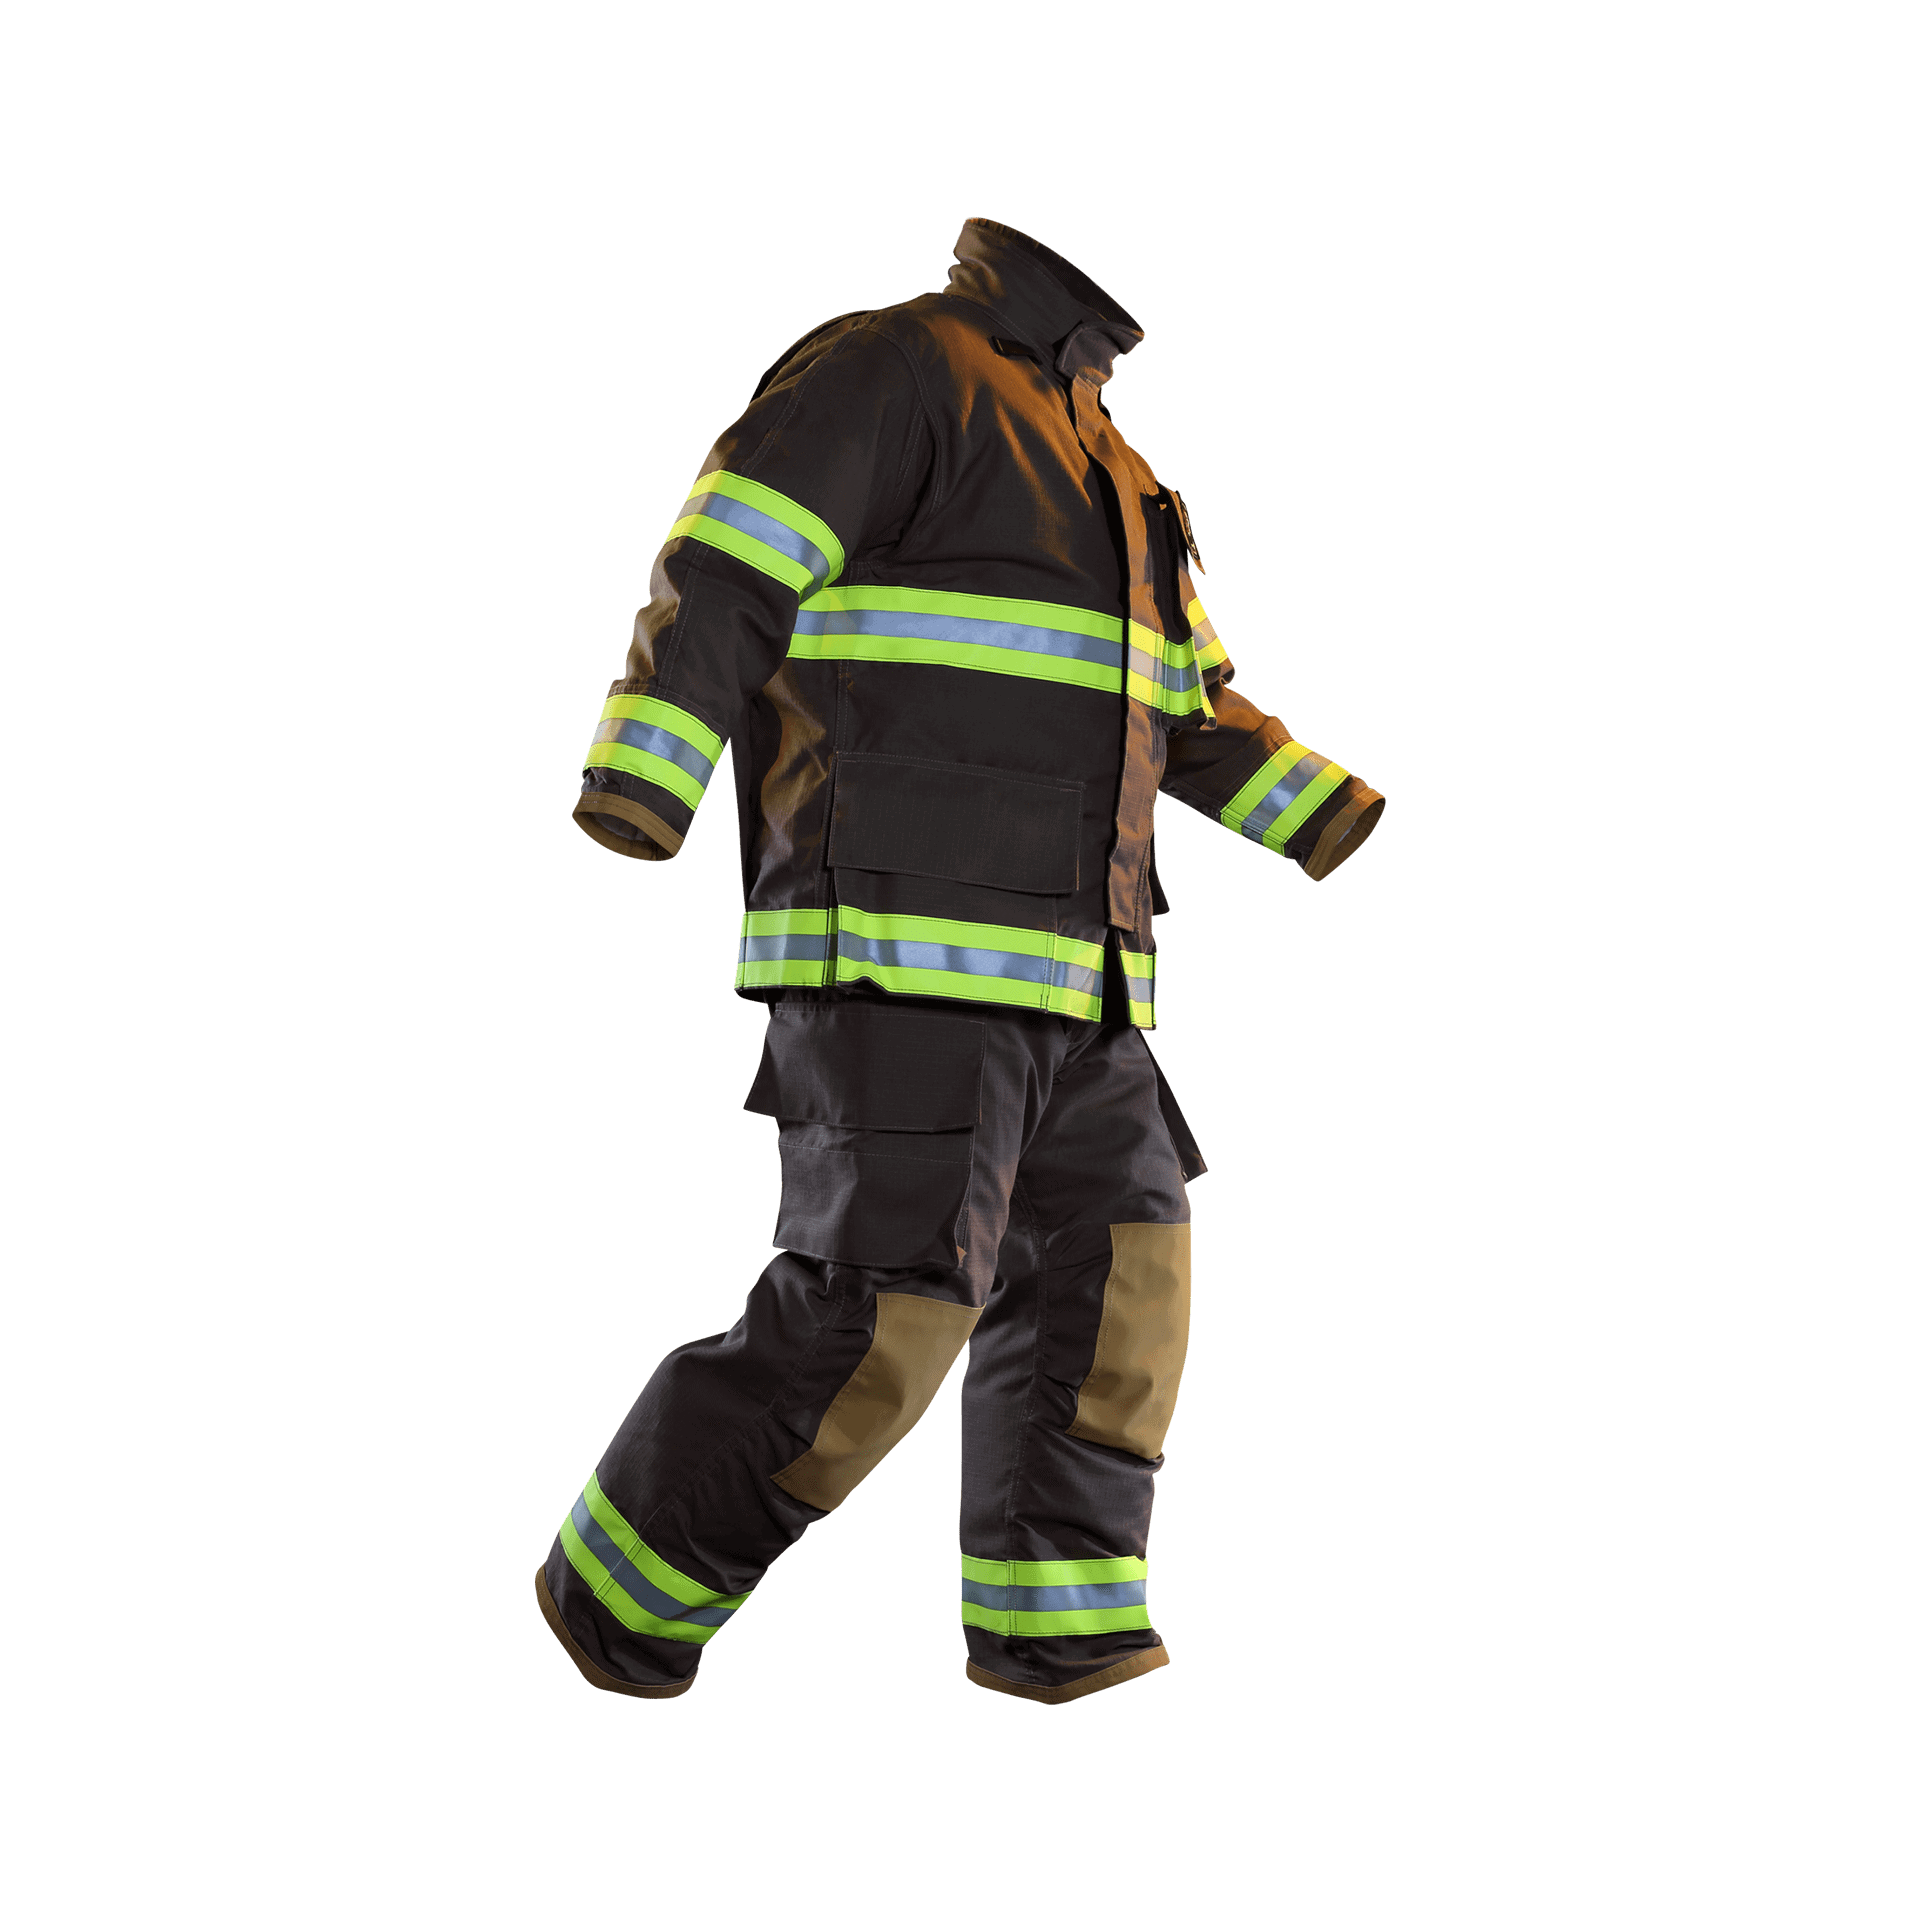 FXC Turnout Gear Full Front View